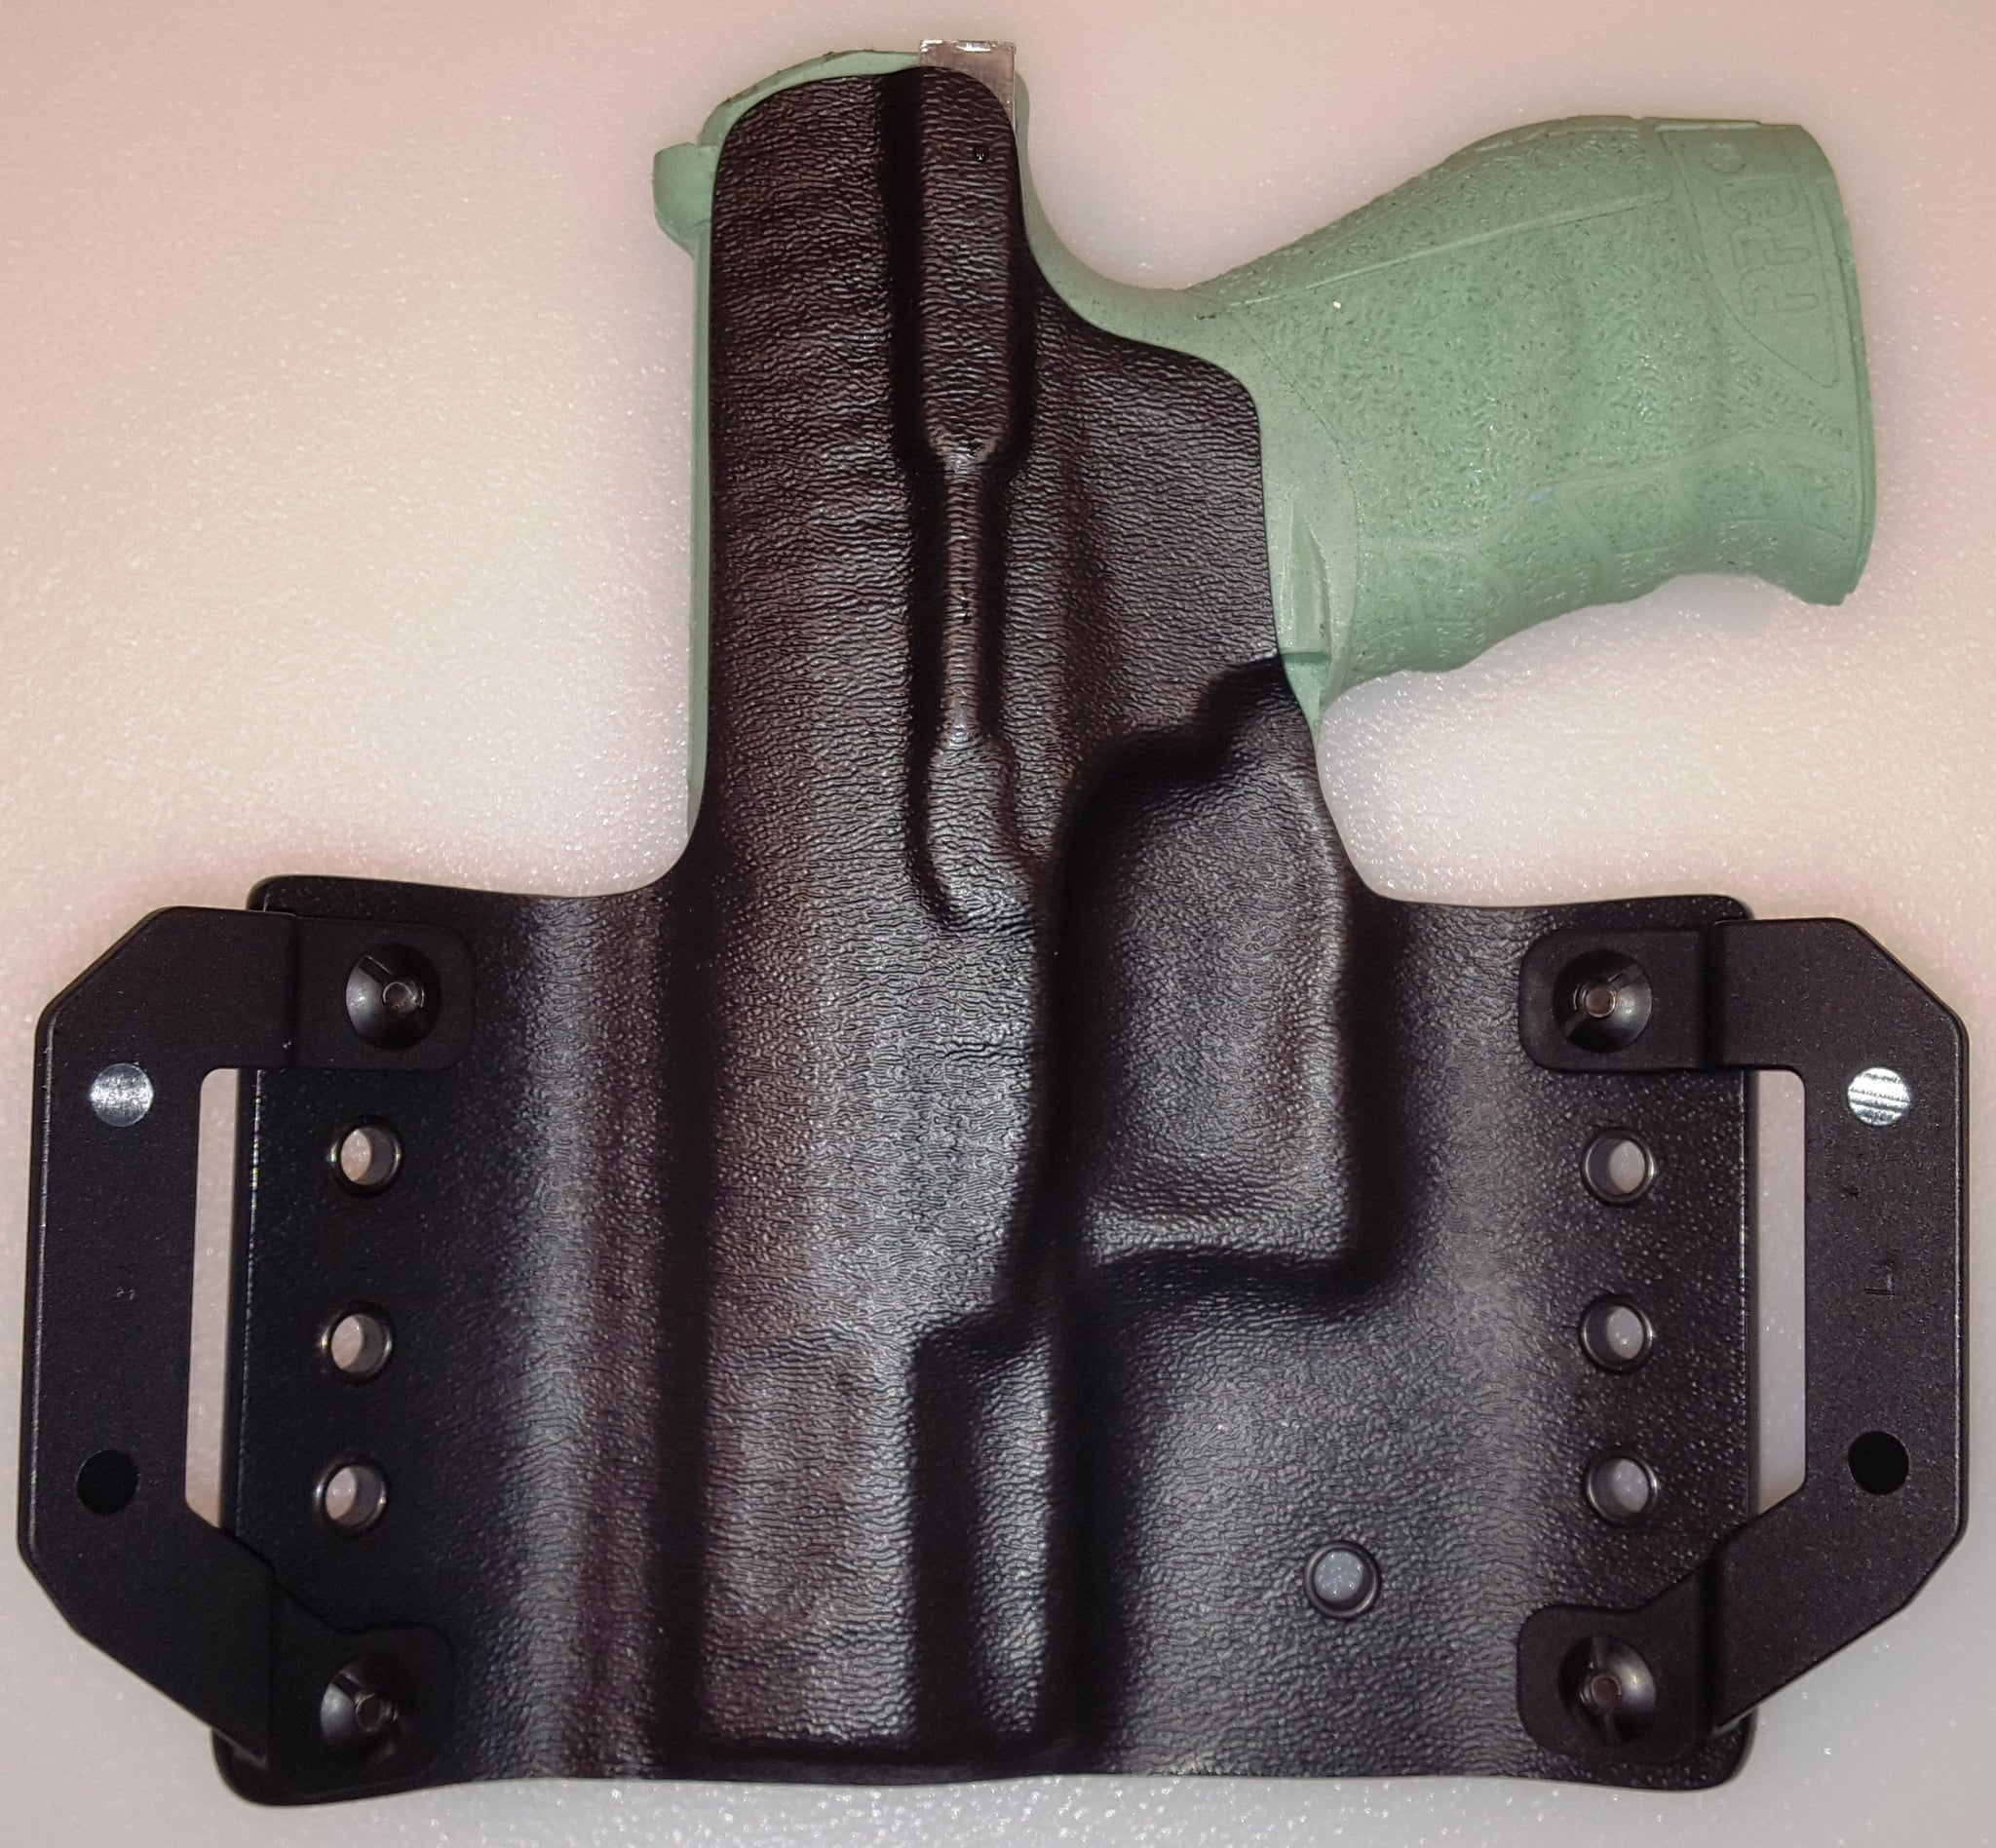 WALTHER PPQ M1 - OWB Kydex Holster *Also available in Q4